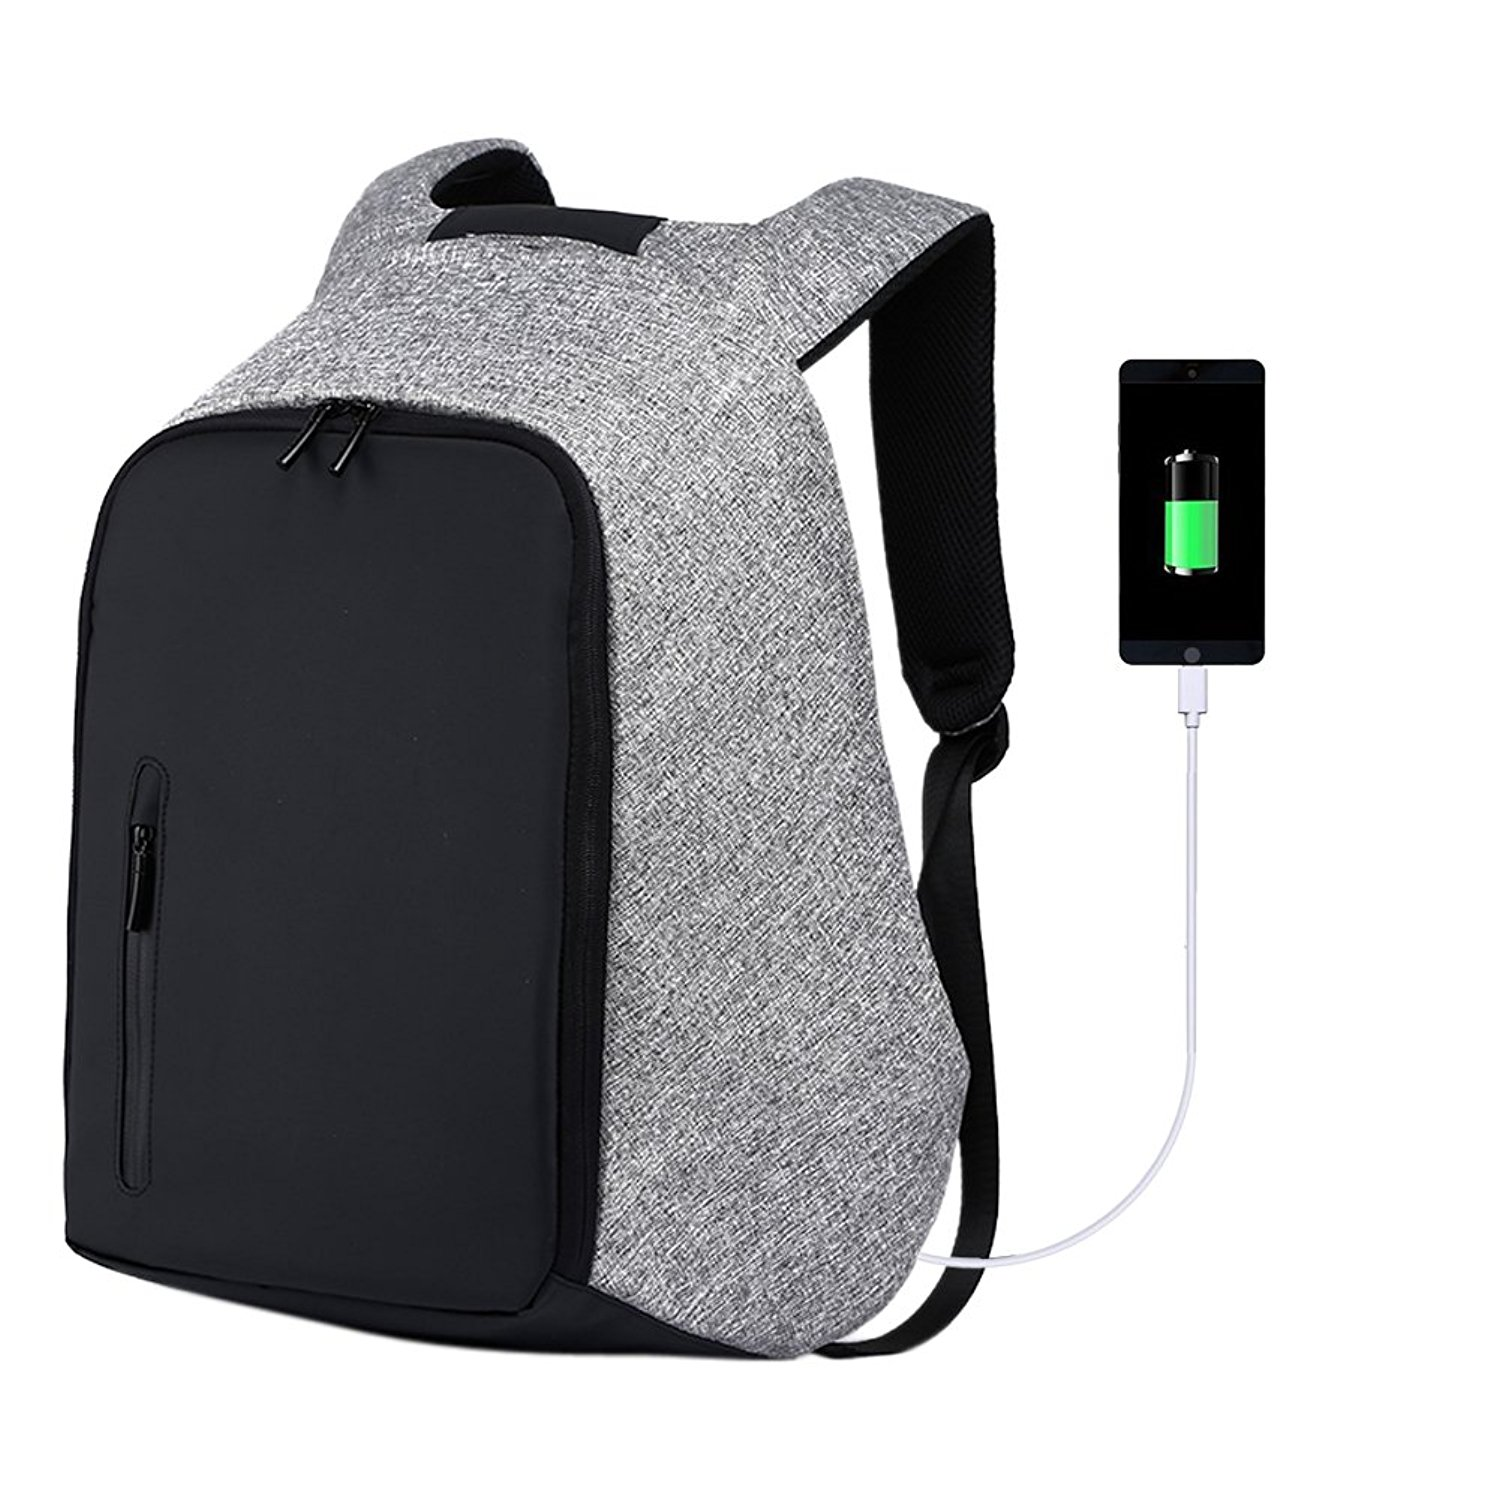 Anti-theft Backpack School Bags College Business Notebook Travel Laptop With USB Charging Port Mens Womens Water Resistant Fits 15.6-Inch Computer Black Black-Grey